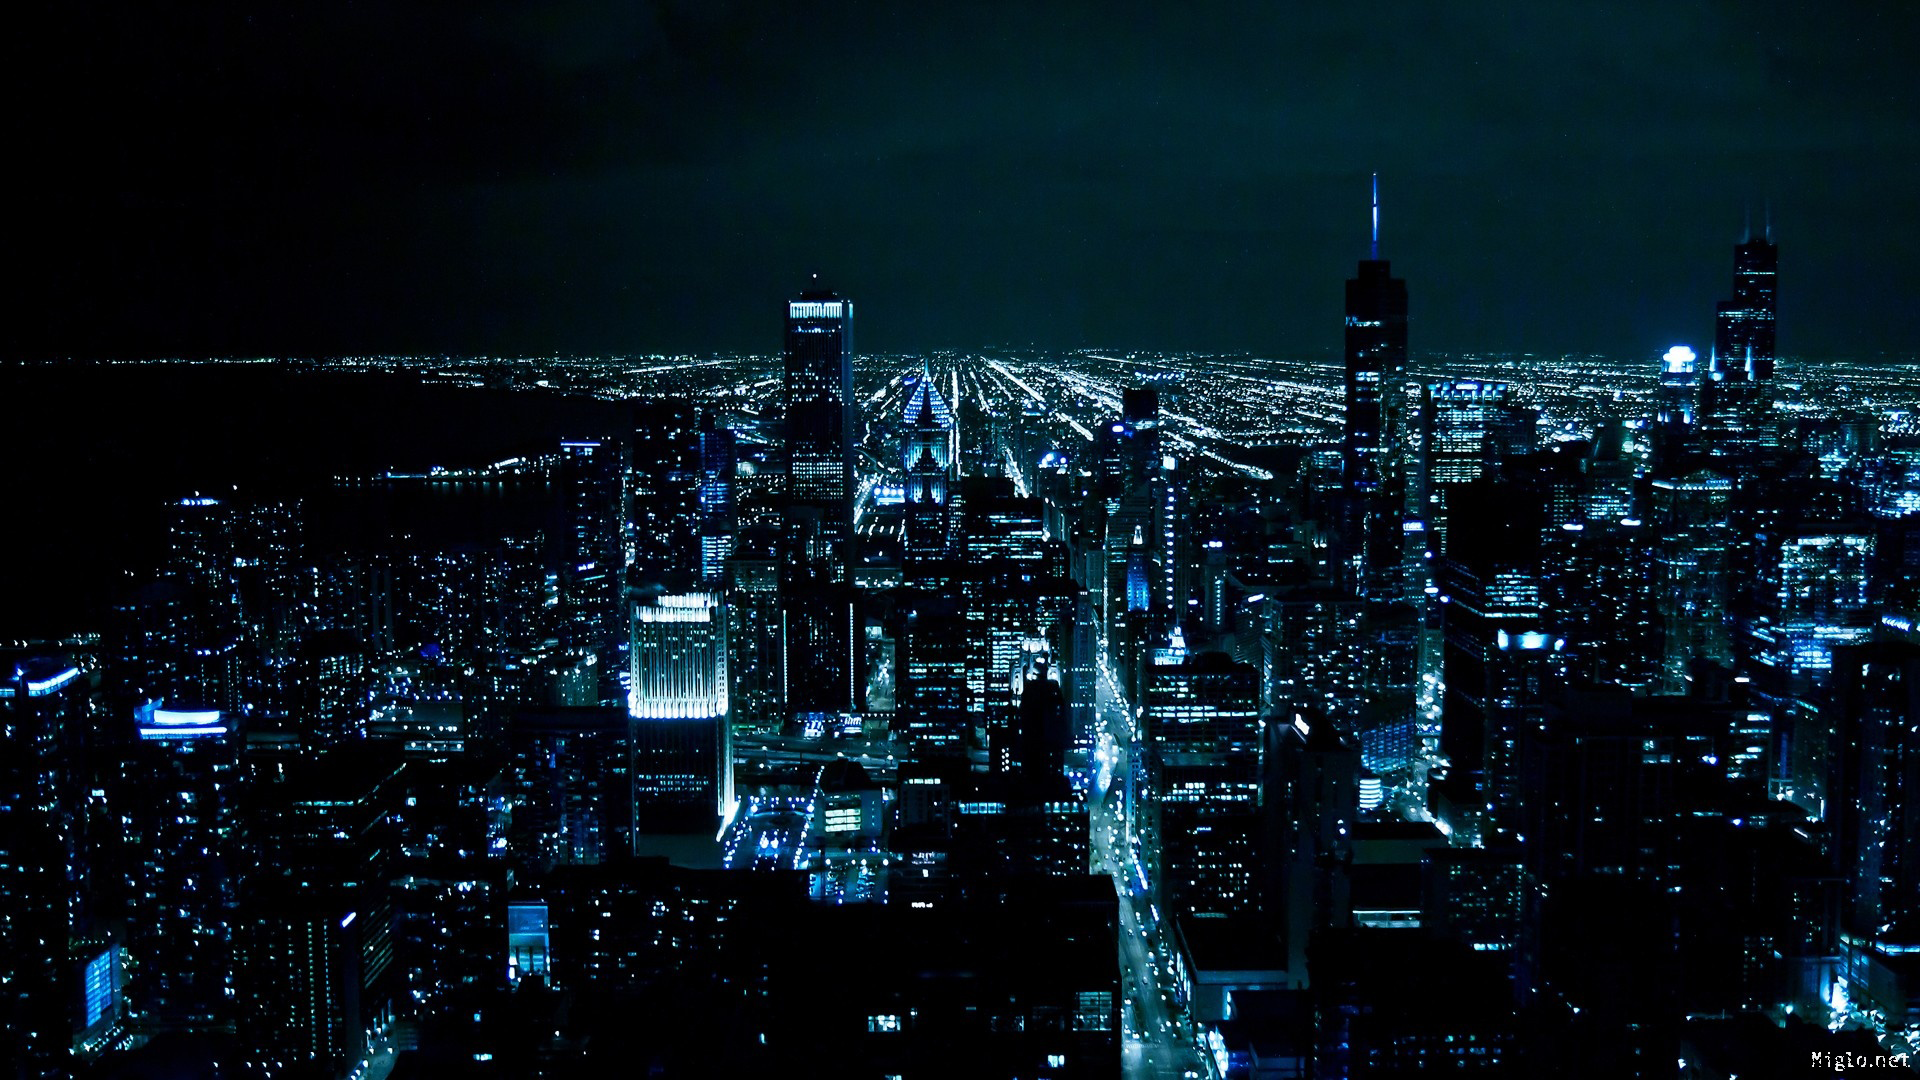 Awesome Wallpapers 2a Hd 3d 7575 Wallpaper Forrestkyle Gallery City Lights Wallpaper City Wallpaper Chicago Wallpaper